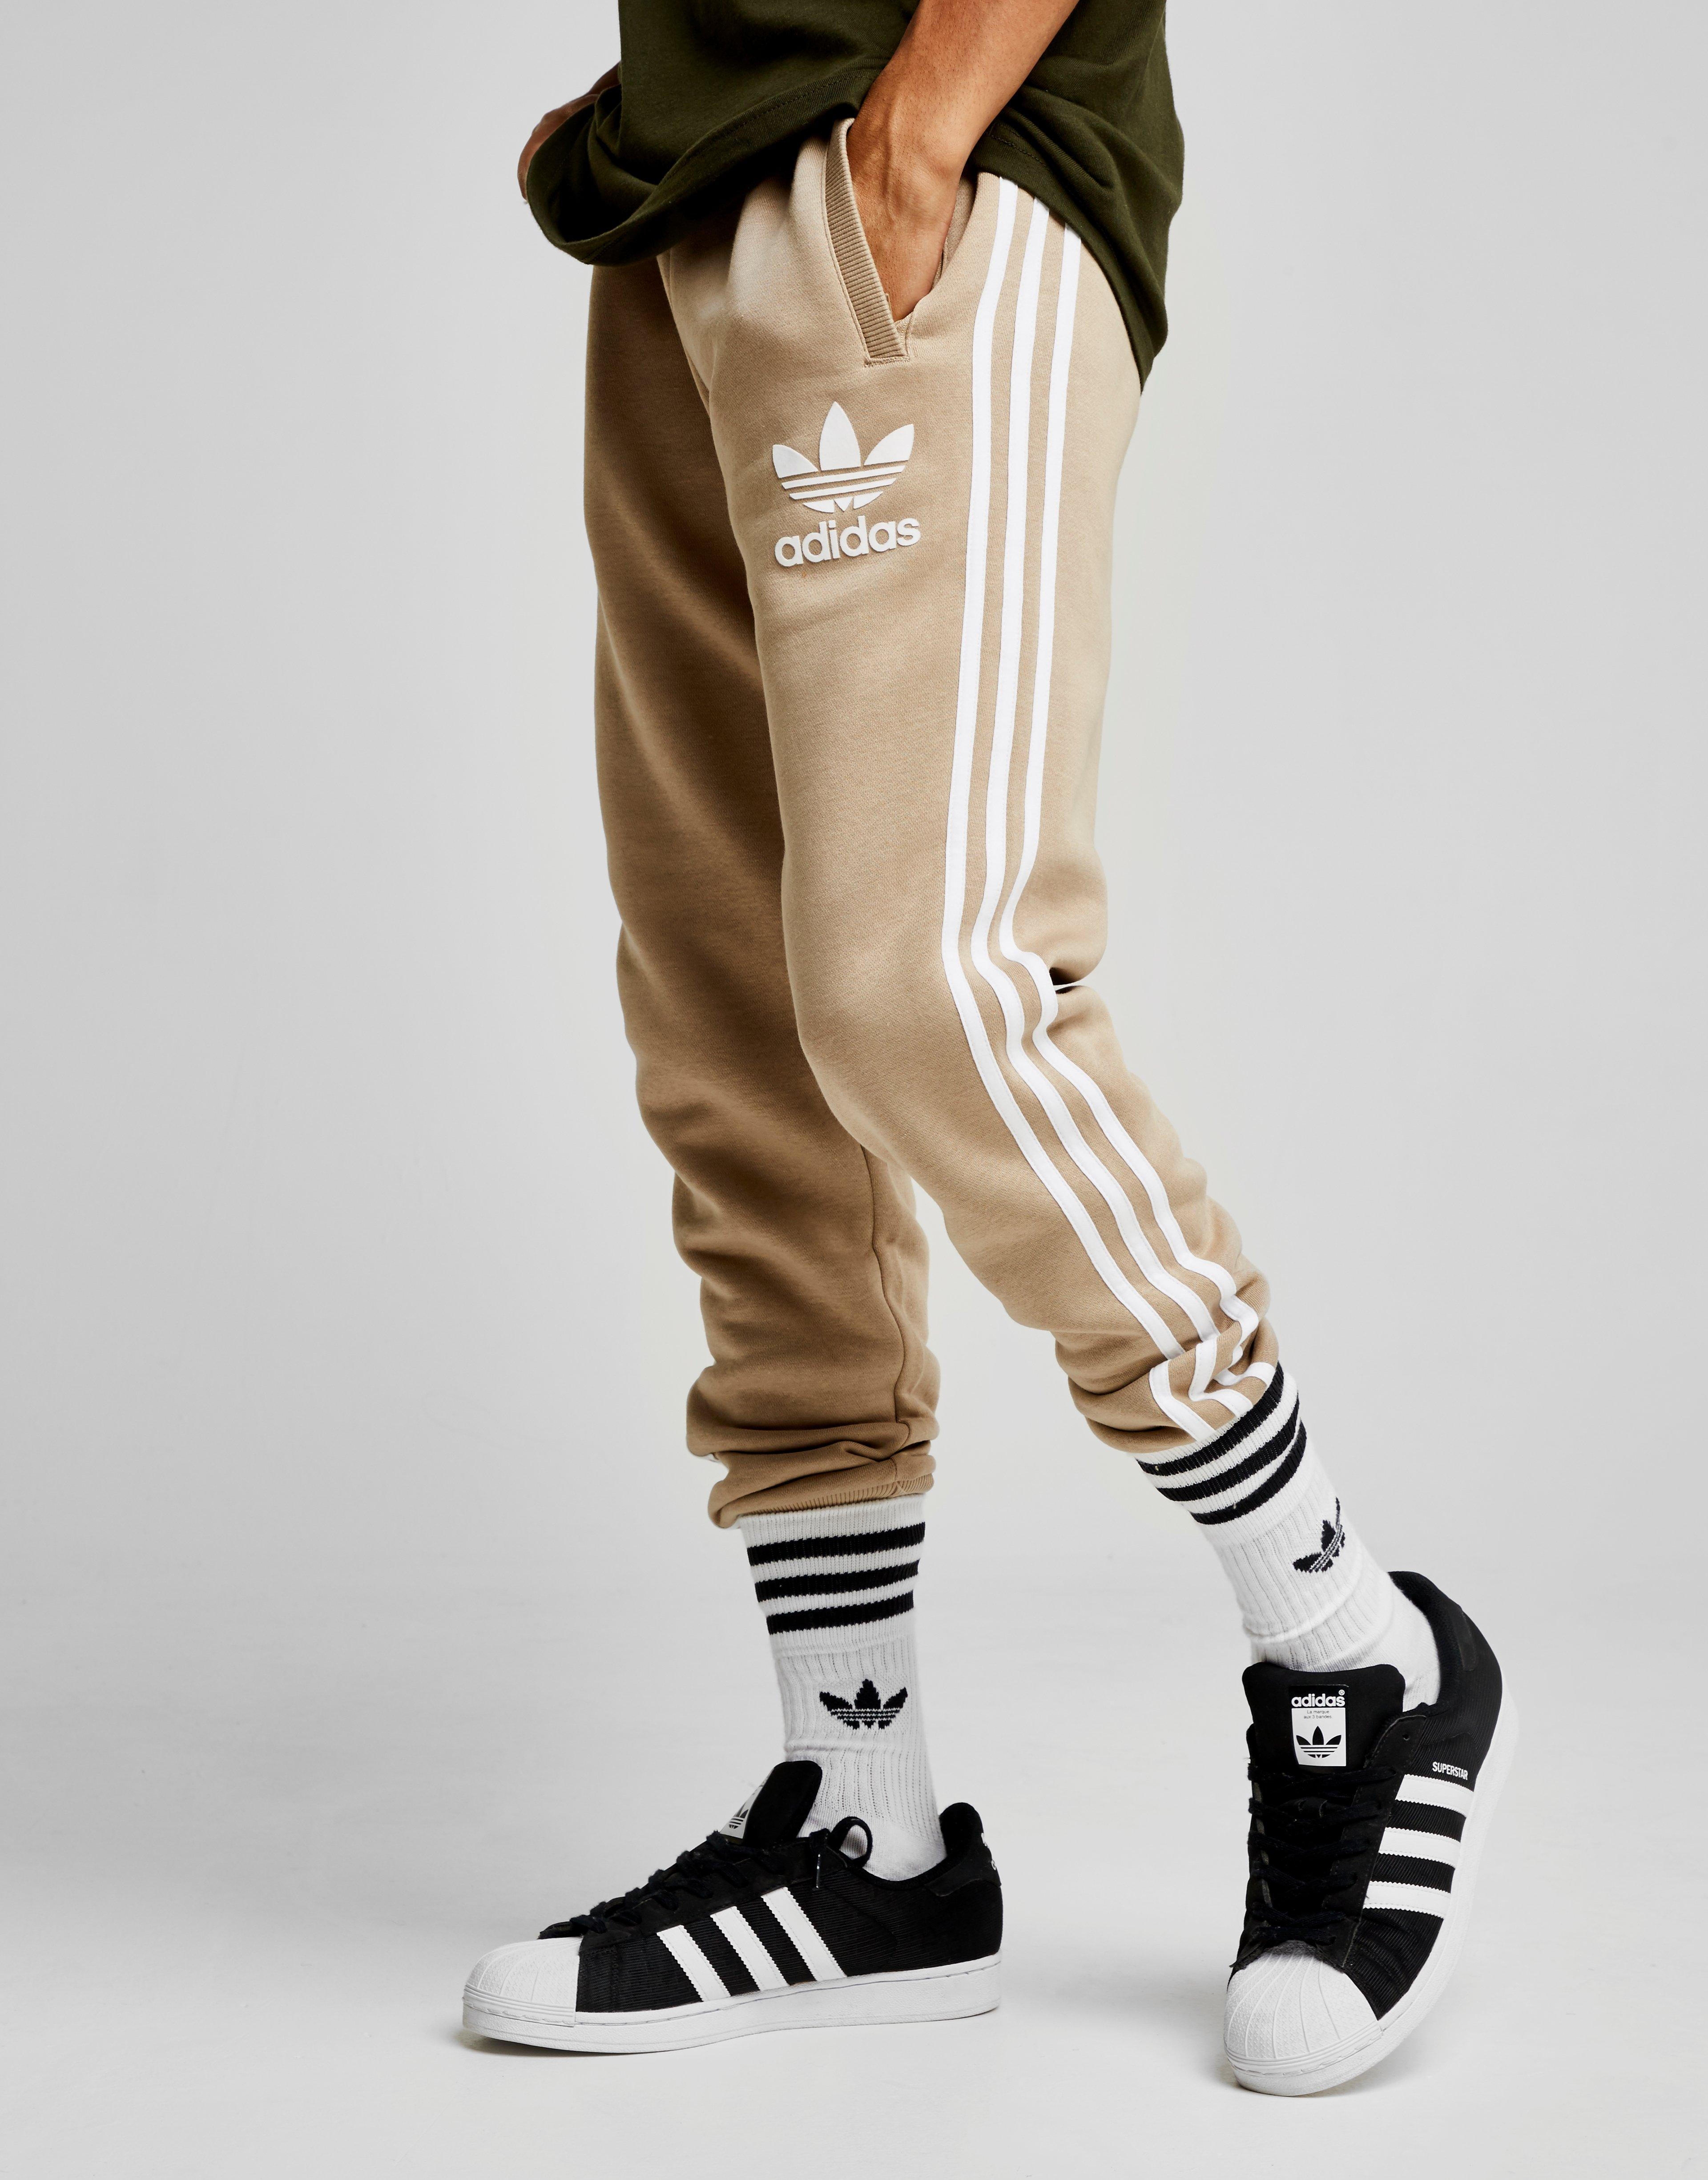 plataforma Extranjero alfombra  adidas Originals Cotton California Track Pants in Light Brown/White (Brown)  for Men - Lyst